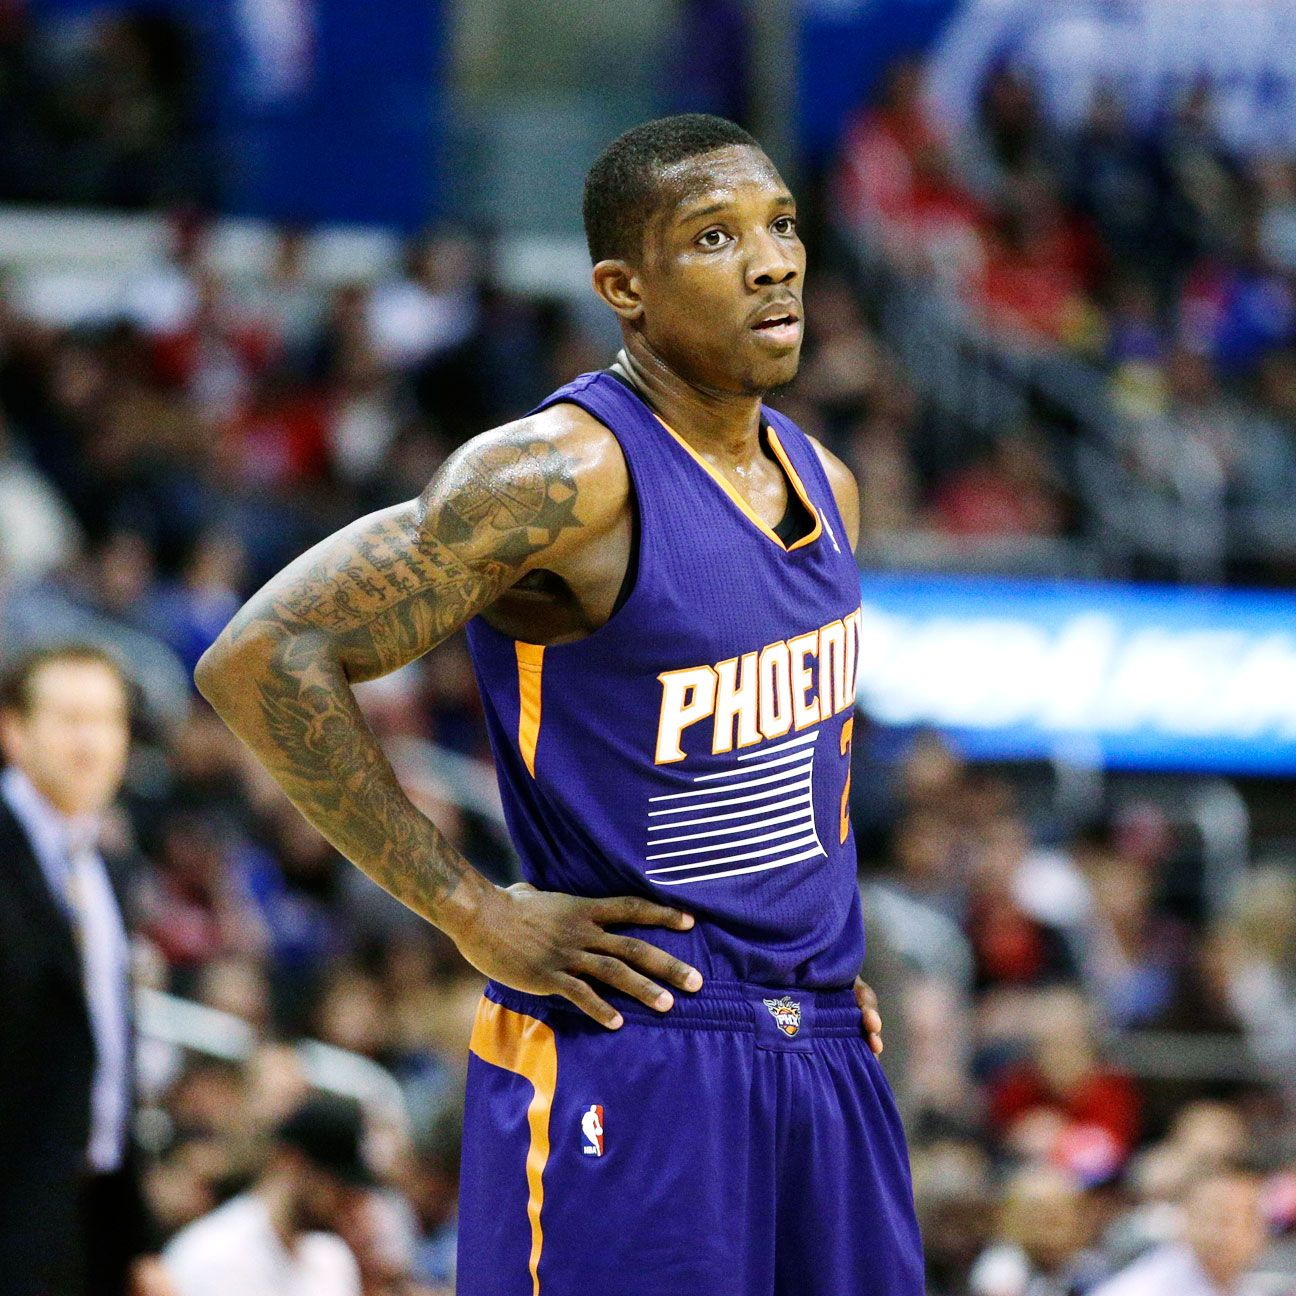 Blazers Kanter Contract: Minnesota Timberwolves Offer Eric Bledsoe Max Contract In